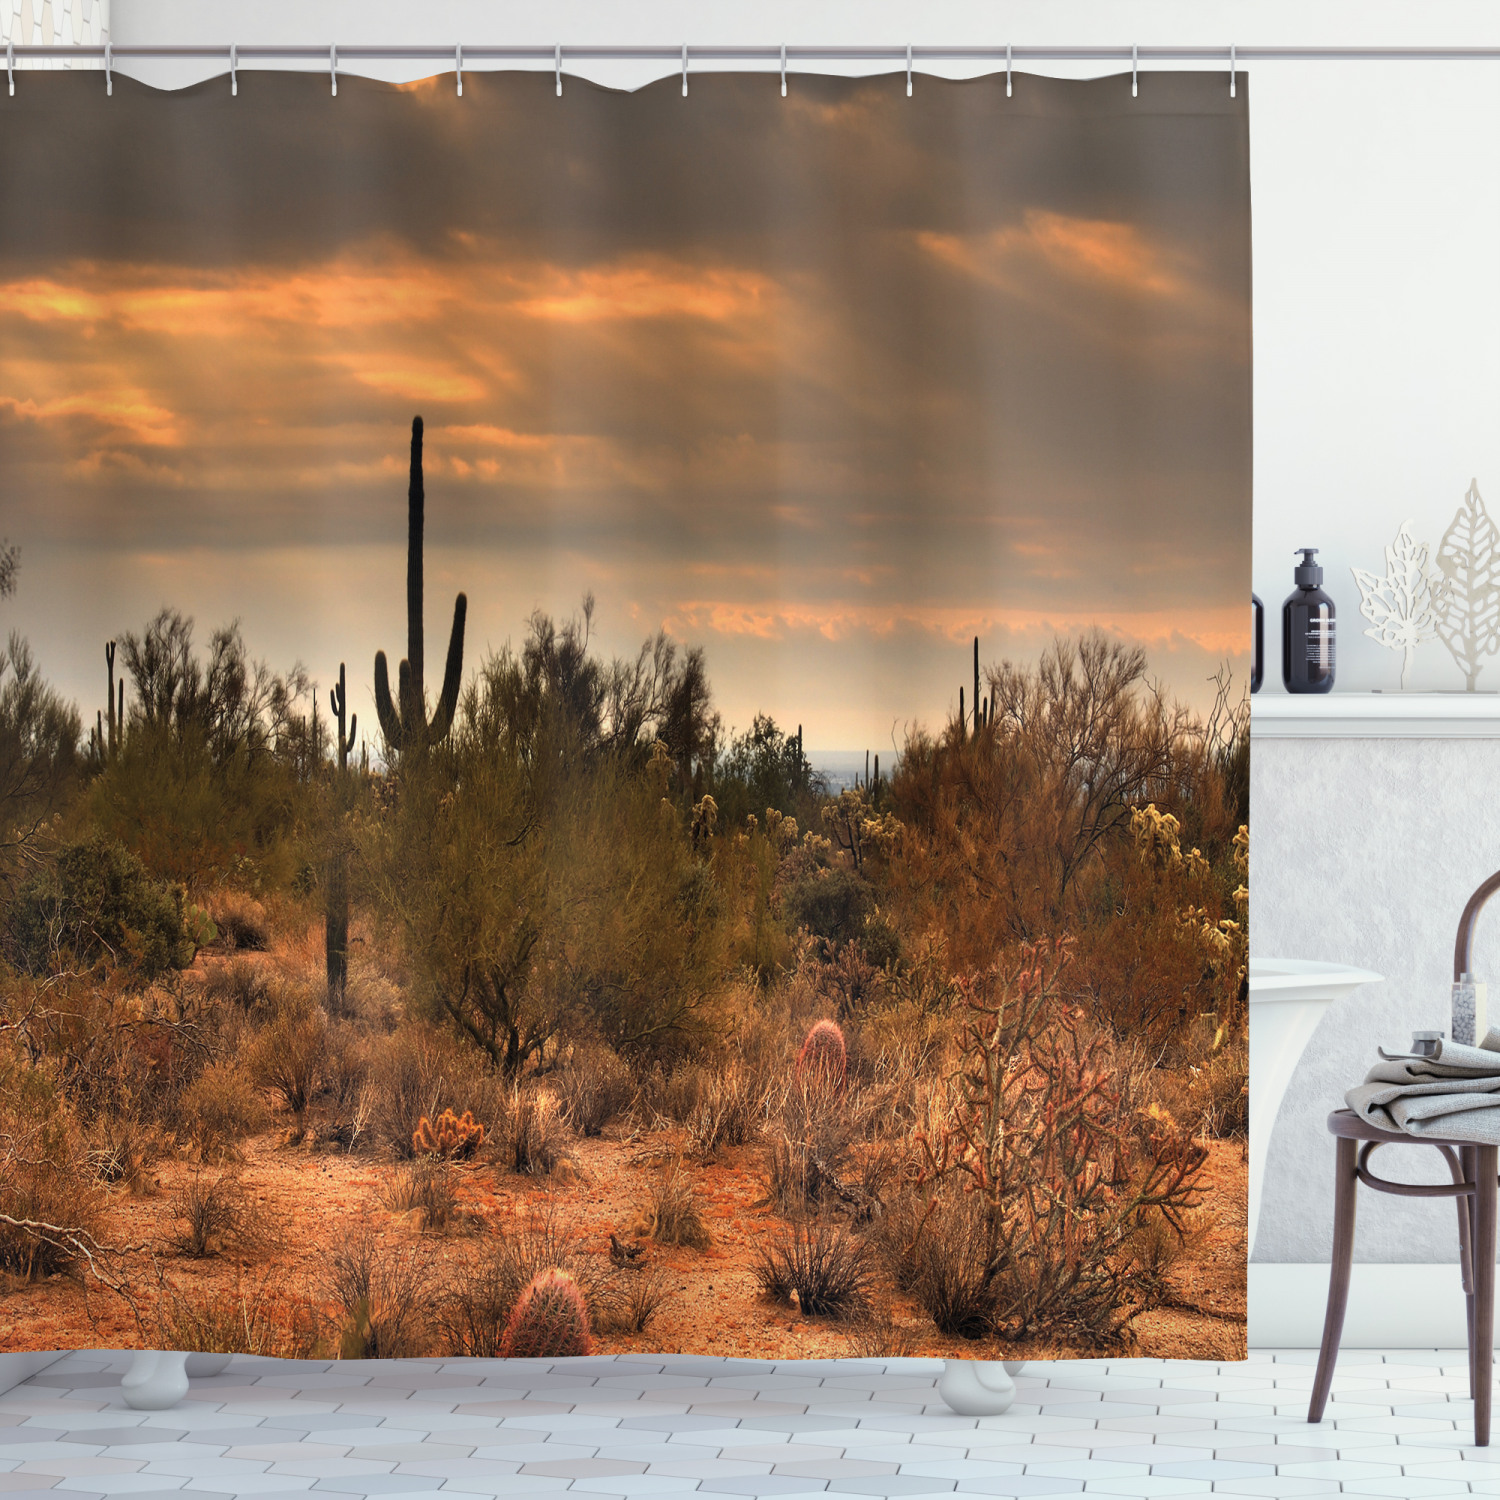 Details about  /Floral Shower Curtain Western Cactus Spikes Print for Bathroom